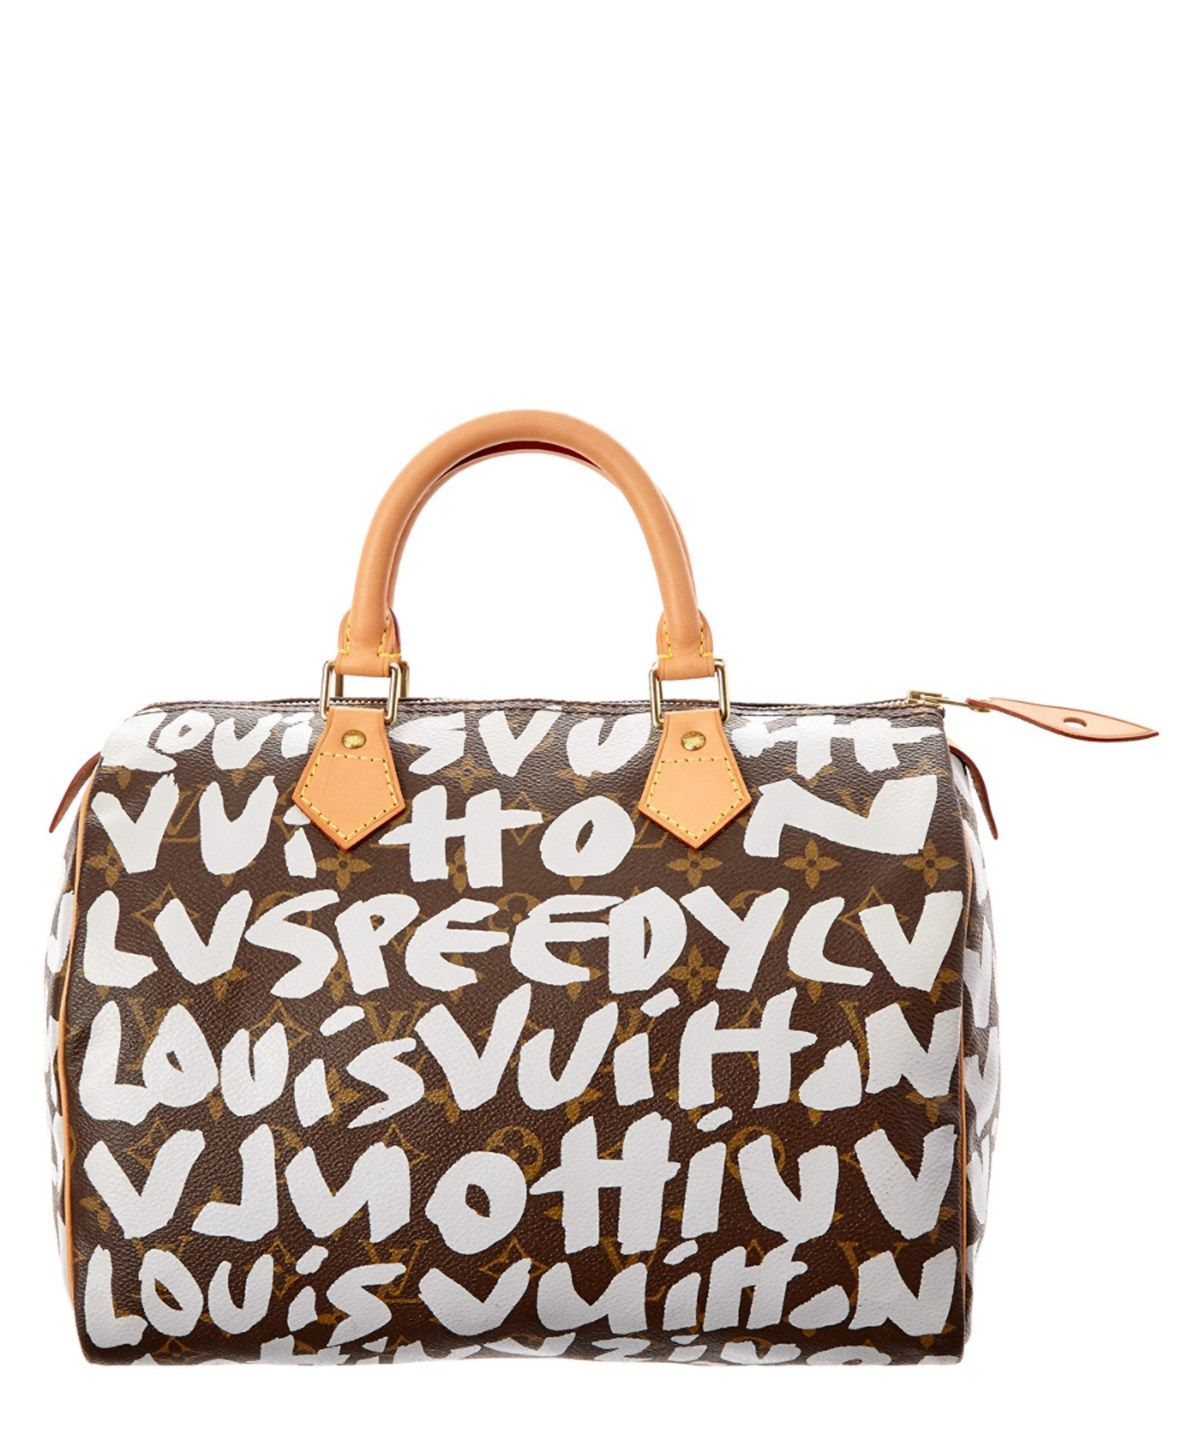 LOUIS VUITTON LOUIS VUITTON LIMITED EDITION STEPHEN SPROUSE GRAFFITI  MONOGRAM CANVAS SPEEDY 30 .  louisvuitton  bags  shoulder bags  lining   canvas   51f260122c23